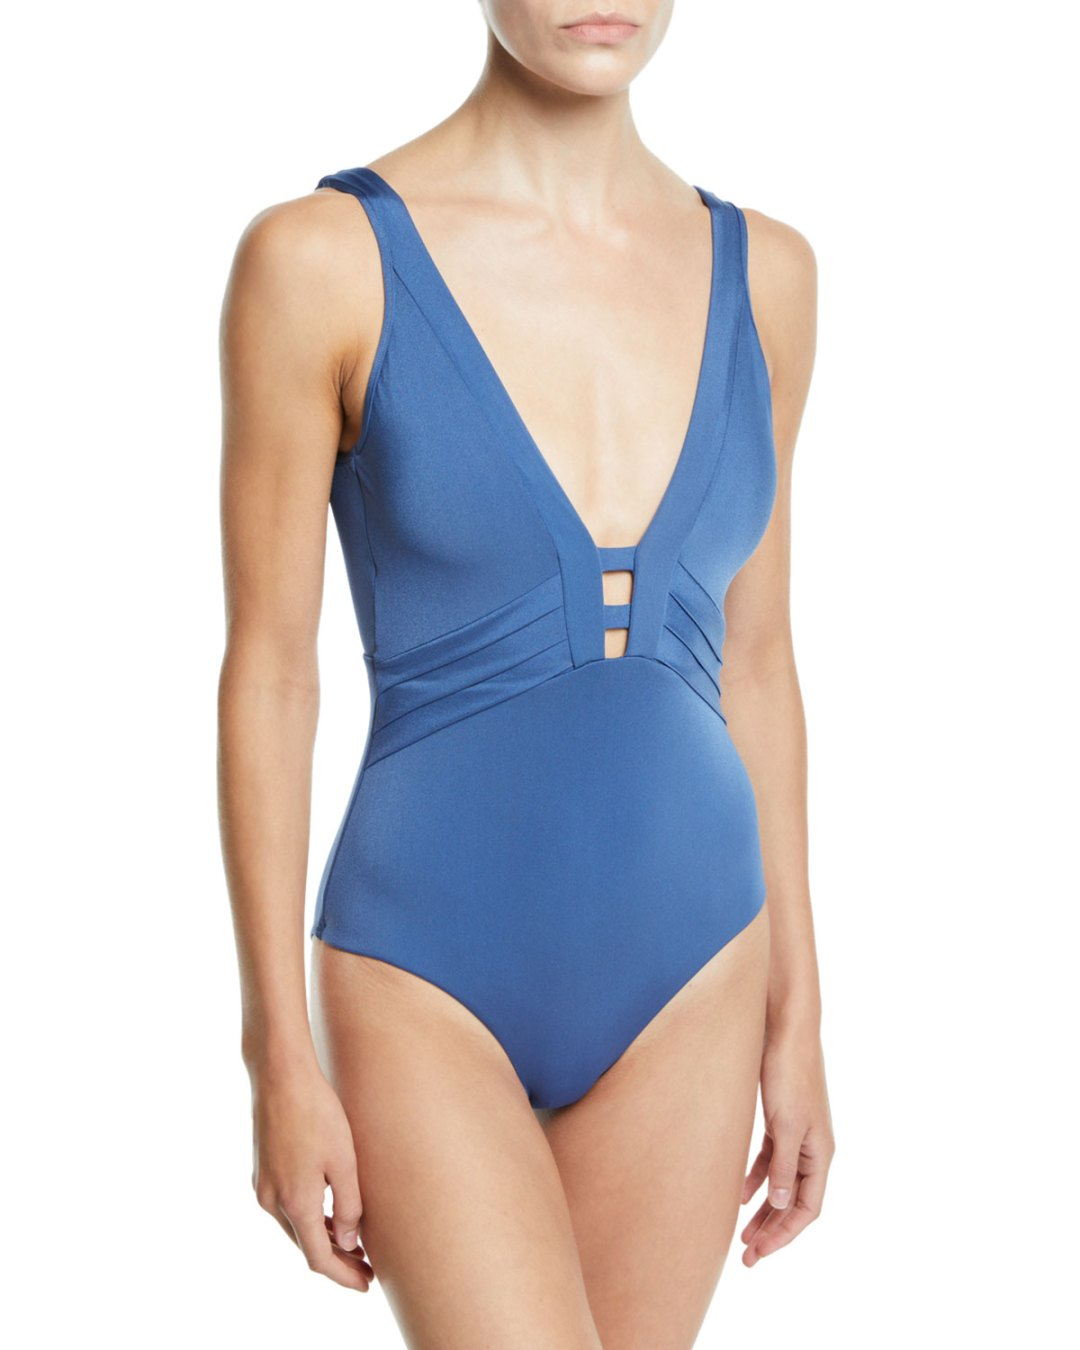 b8b611998fefac Neiman Marcus – Mirage Plunging V-Neck One-Piece Swimsuit – $215.00